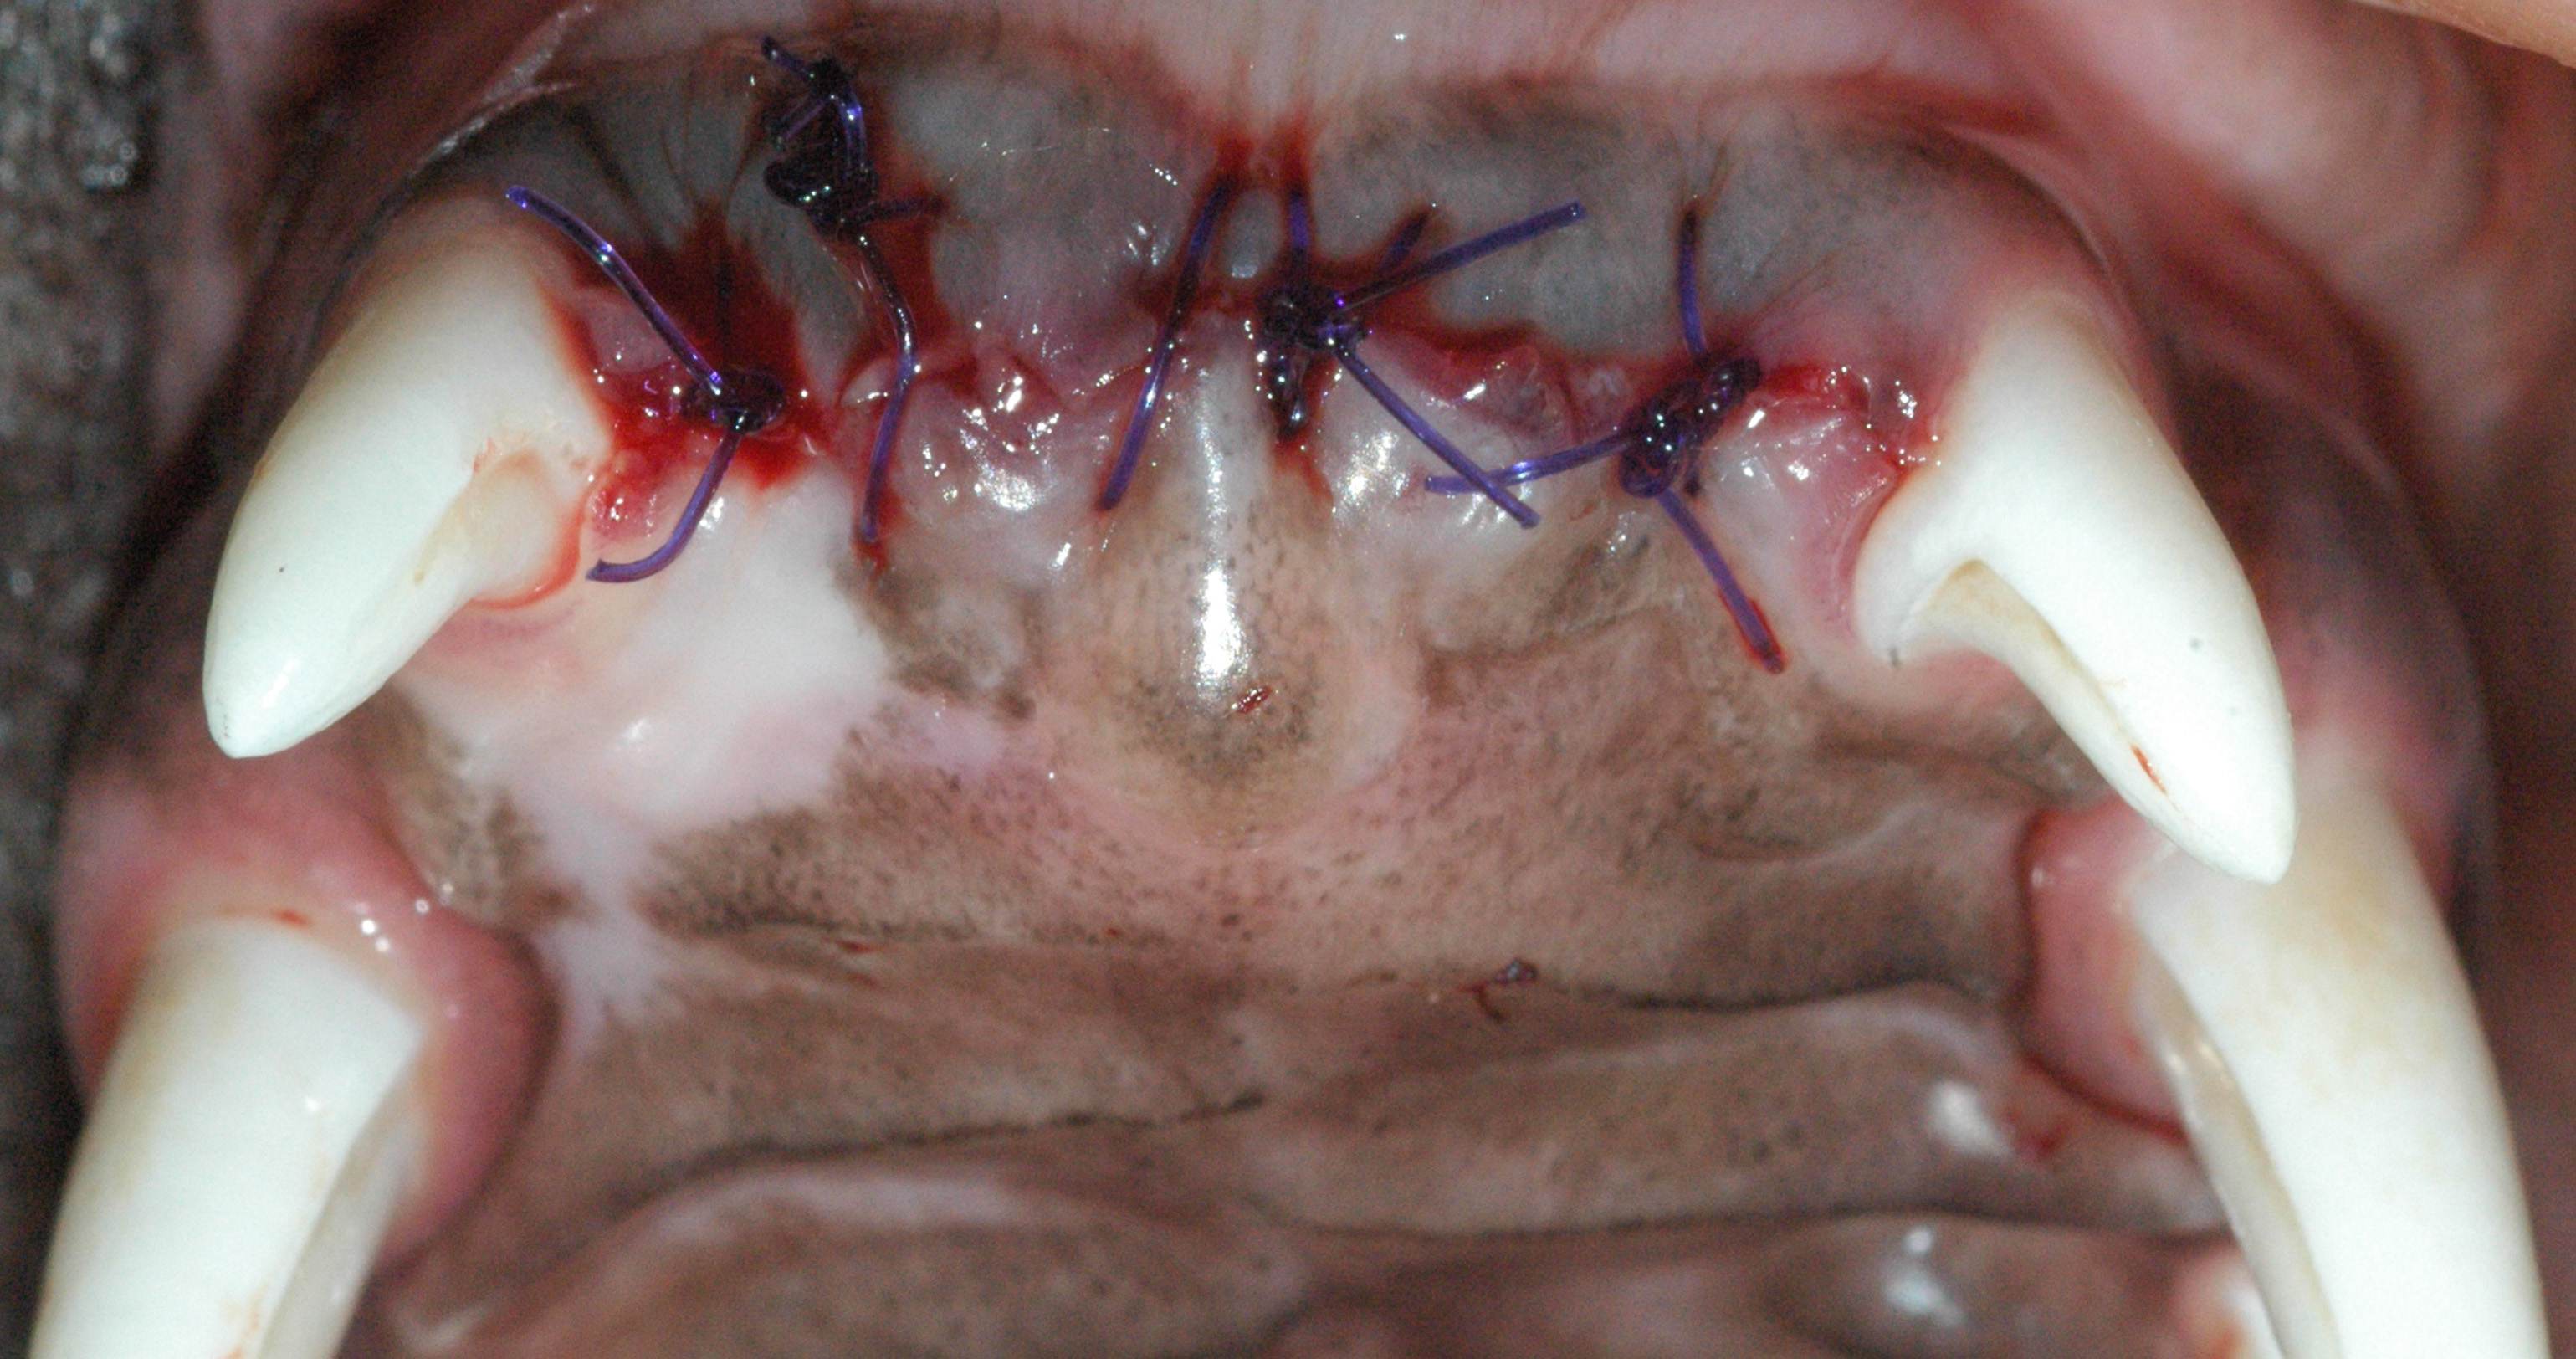 Maxillary incisor extractions alleviating impingement